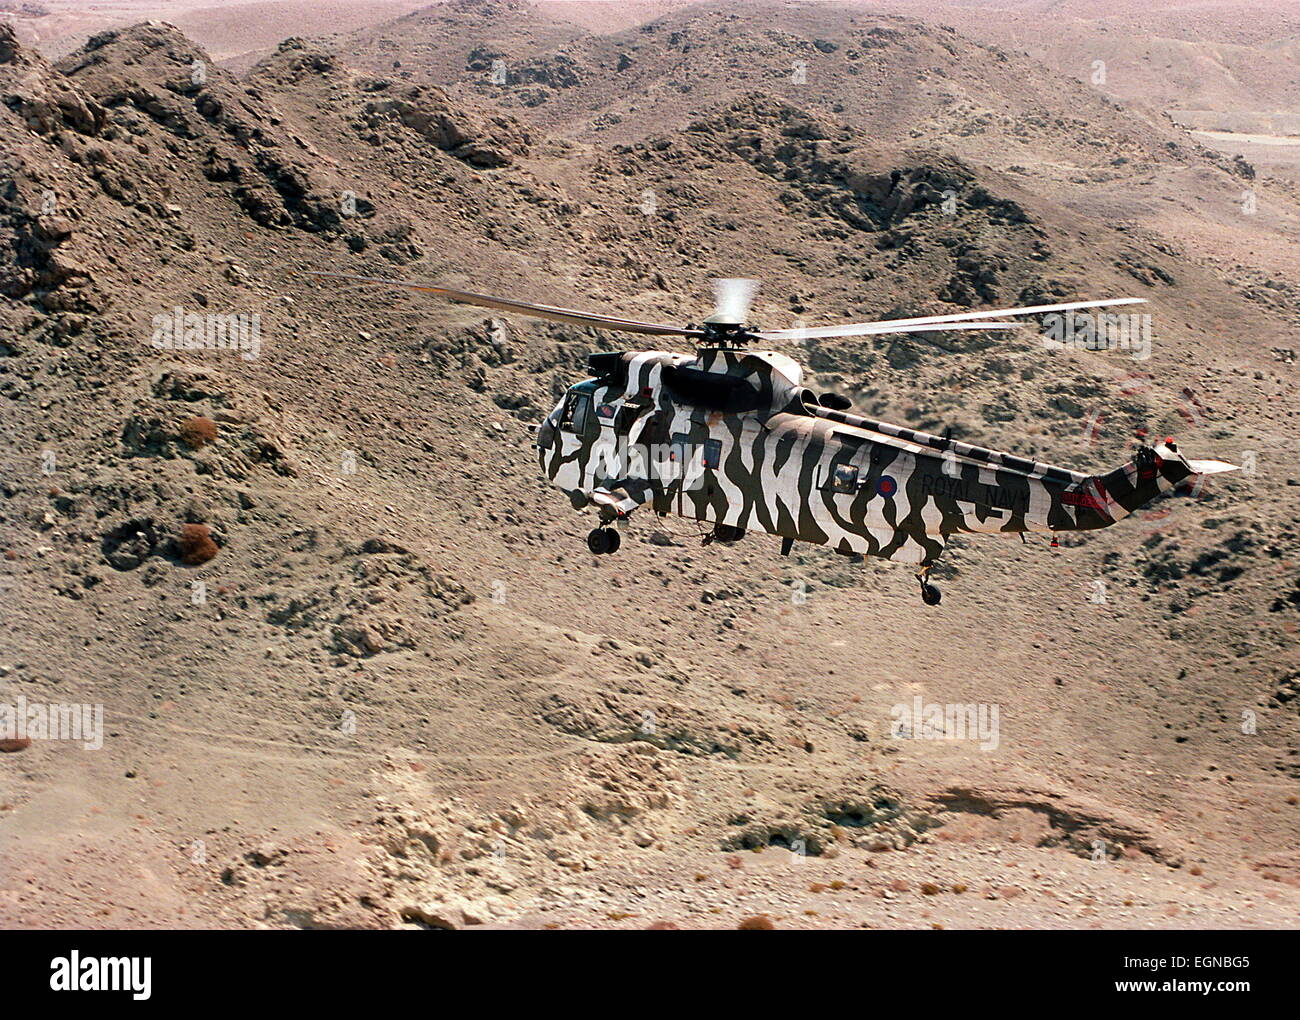 AJAX NEWS & FEATURE SERVICE (OMA-2) 5 OCT 2001. OMAN. A ROYAL NAVY AIR SQUADRON SEA KING OVERFLIES THE HARSH - Stock Image